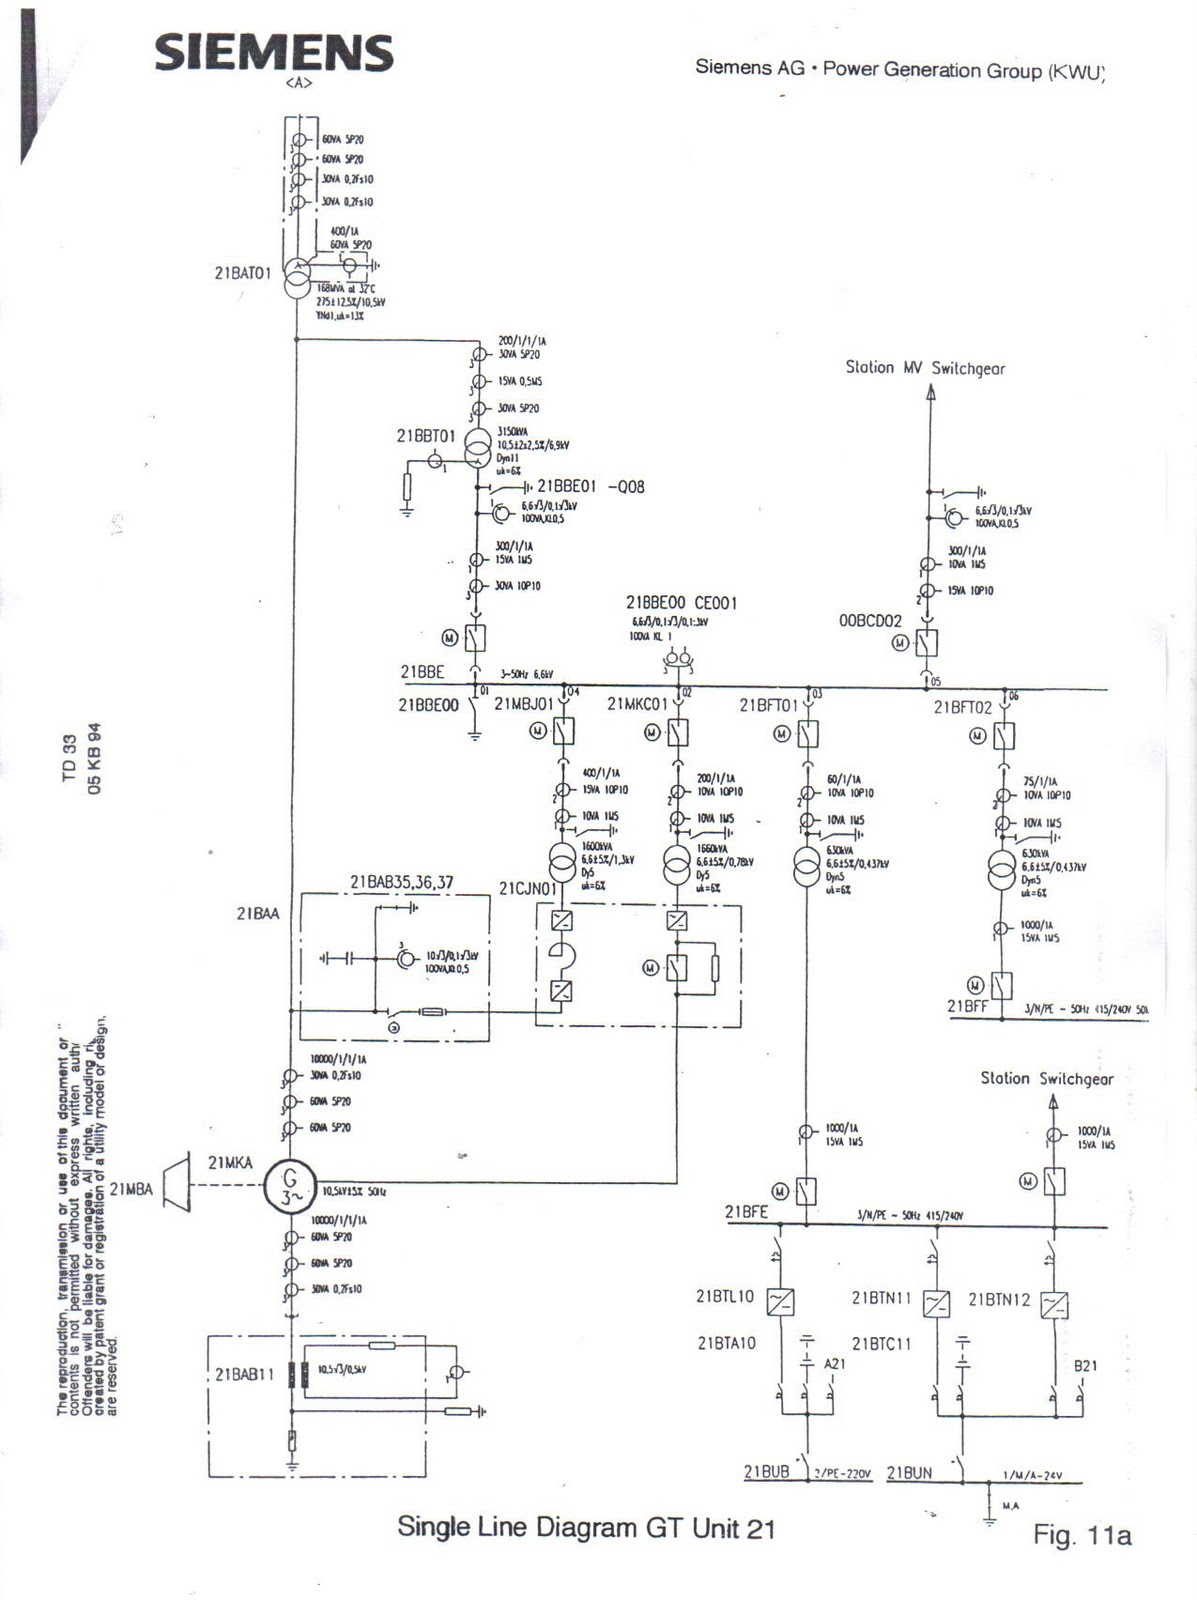 dmie's Industrial: GT and ST single line diagram